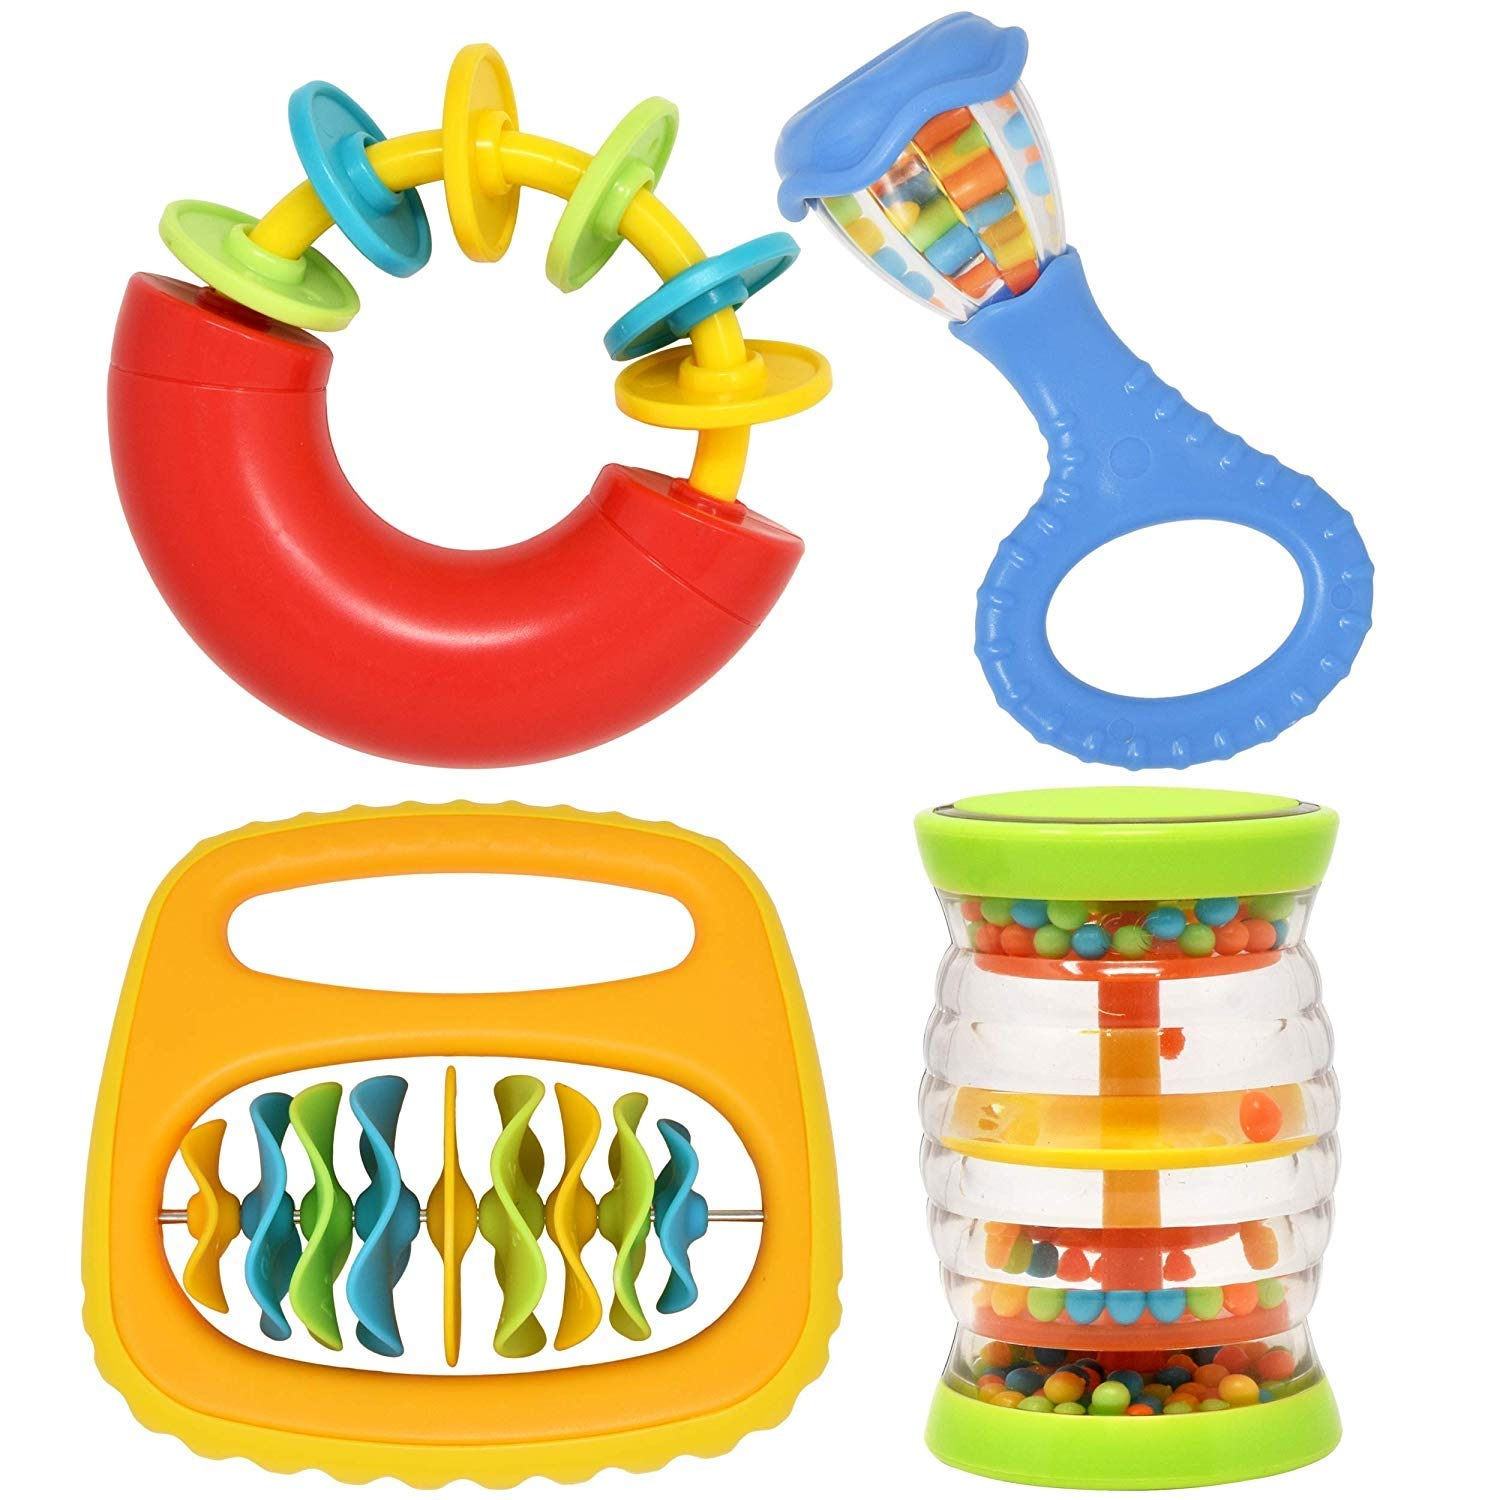 4 Piece Baby Instruments Band Set Musical Toys for Infant Babies Toddler Kids Includes Mini Rainbow Shaker, Baby Maracas Rattle, Baby Clip Clap and Musical Ring Safe from Ages 3 Months and Up Gift Boutique